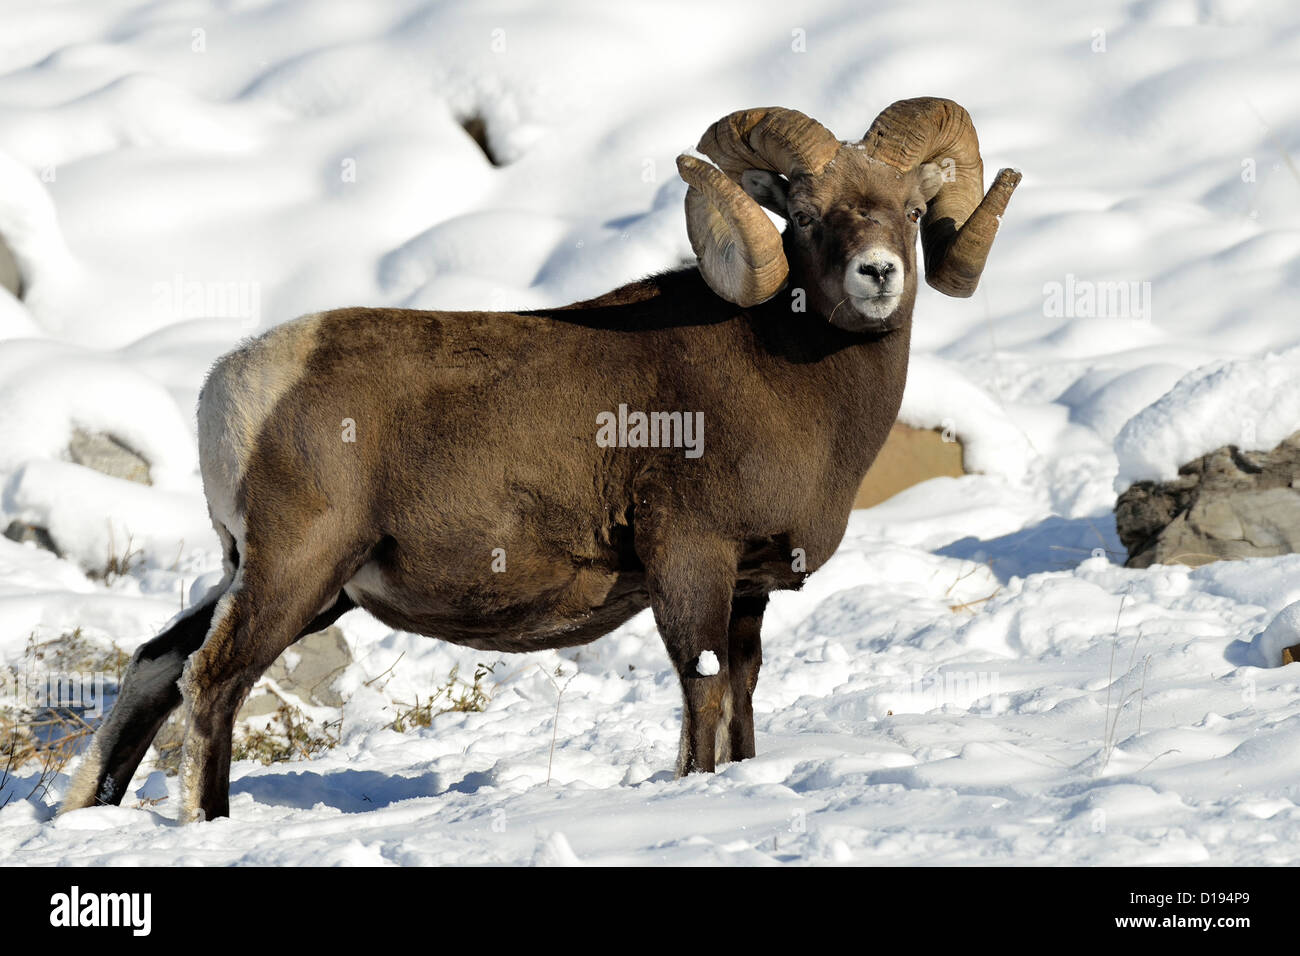 A mature Bighorn ram standing on a snow covered hillside foraging for food. - Stock Image